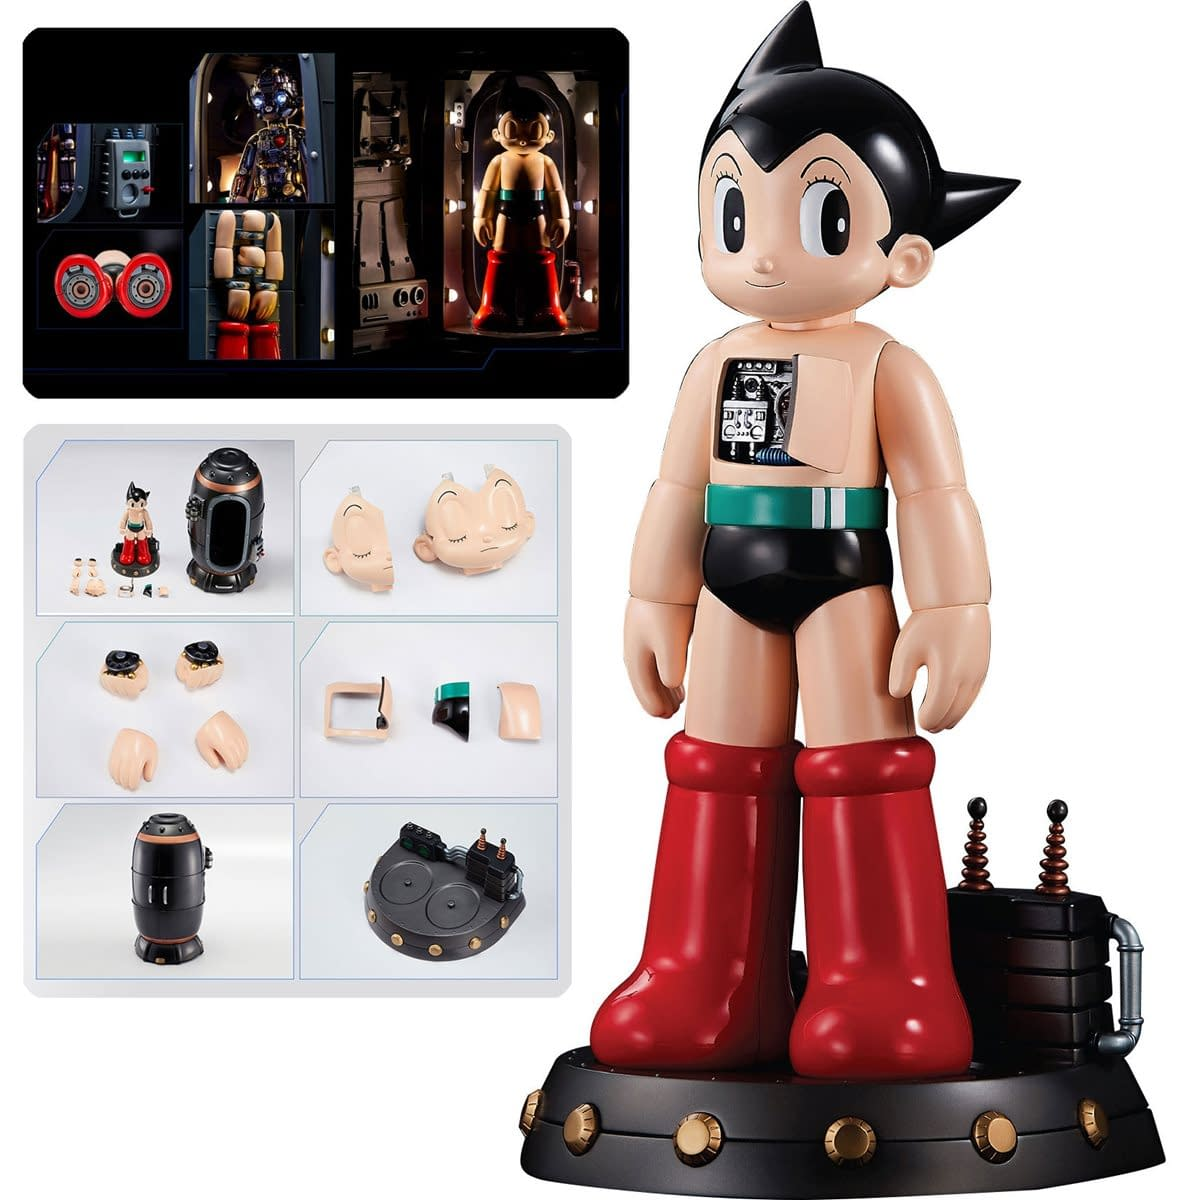 Astro Boy Deluxe Statue from Blitzway